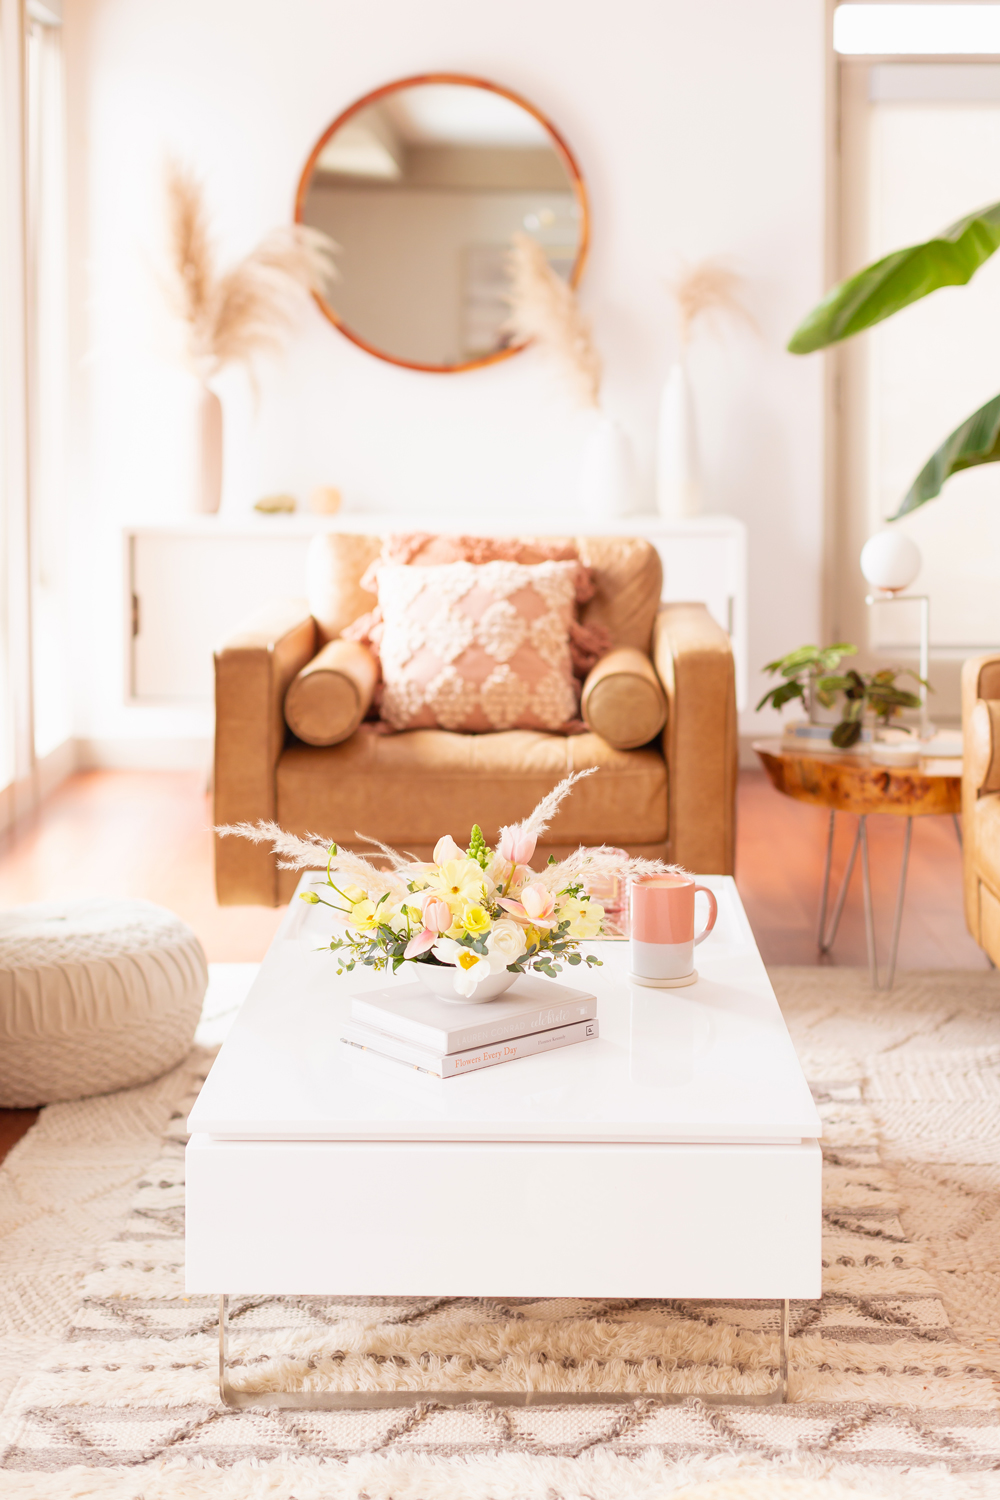 A Pastel Easter Flower Arrangement featuring pampas grass on white coffee table with a pink mug in bright and airy mid century meets boho living room | Calgary Lifestyle Blogger // JustineCelina.com